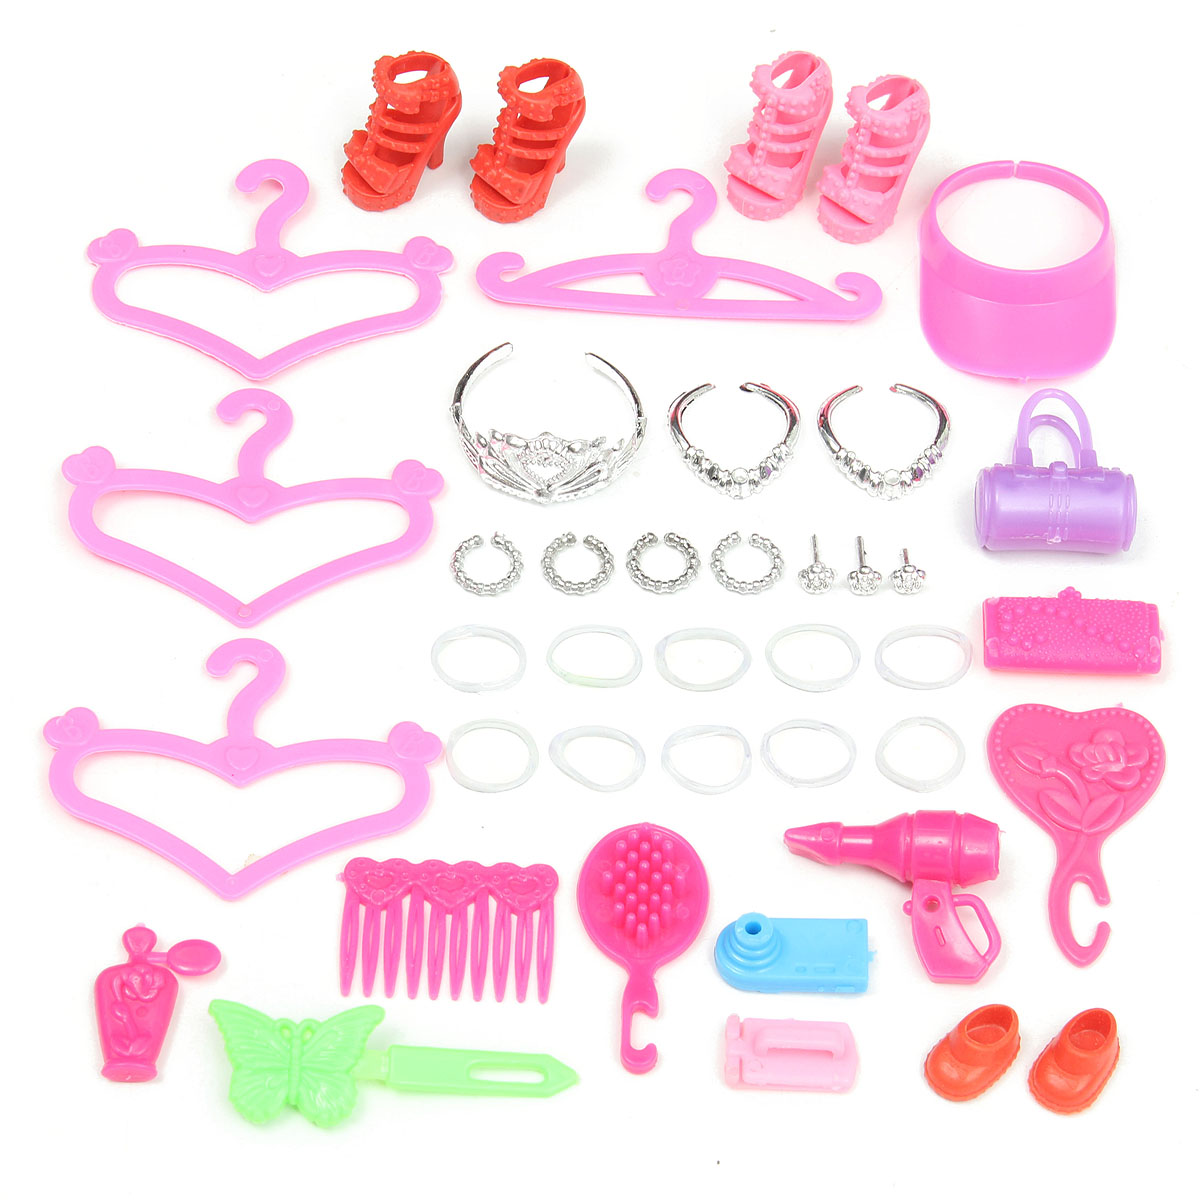 Equipment for Barbie Doll Set of Vogue Jewellery Necklace Earring Bowknot Crown Footwear Hangers rubber Accent Dolls Children Present